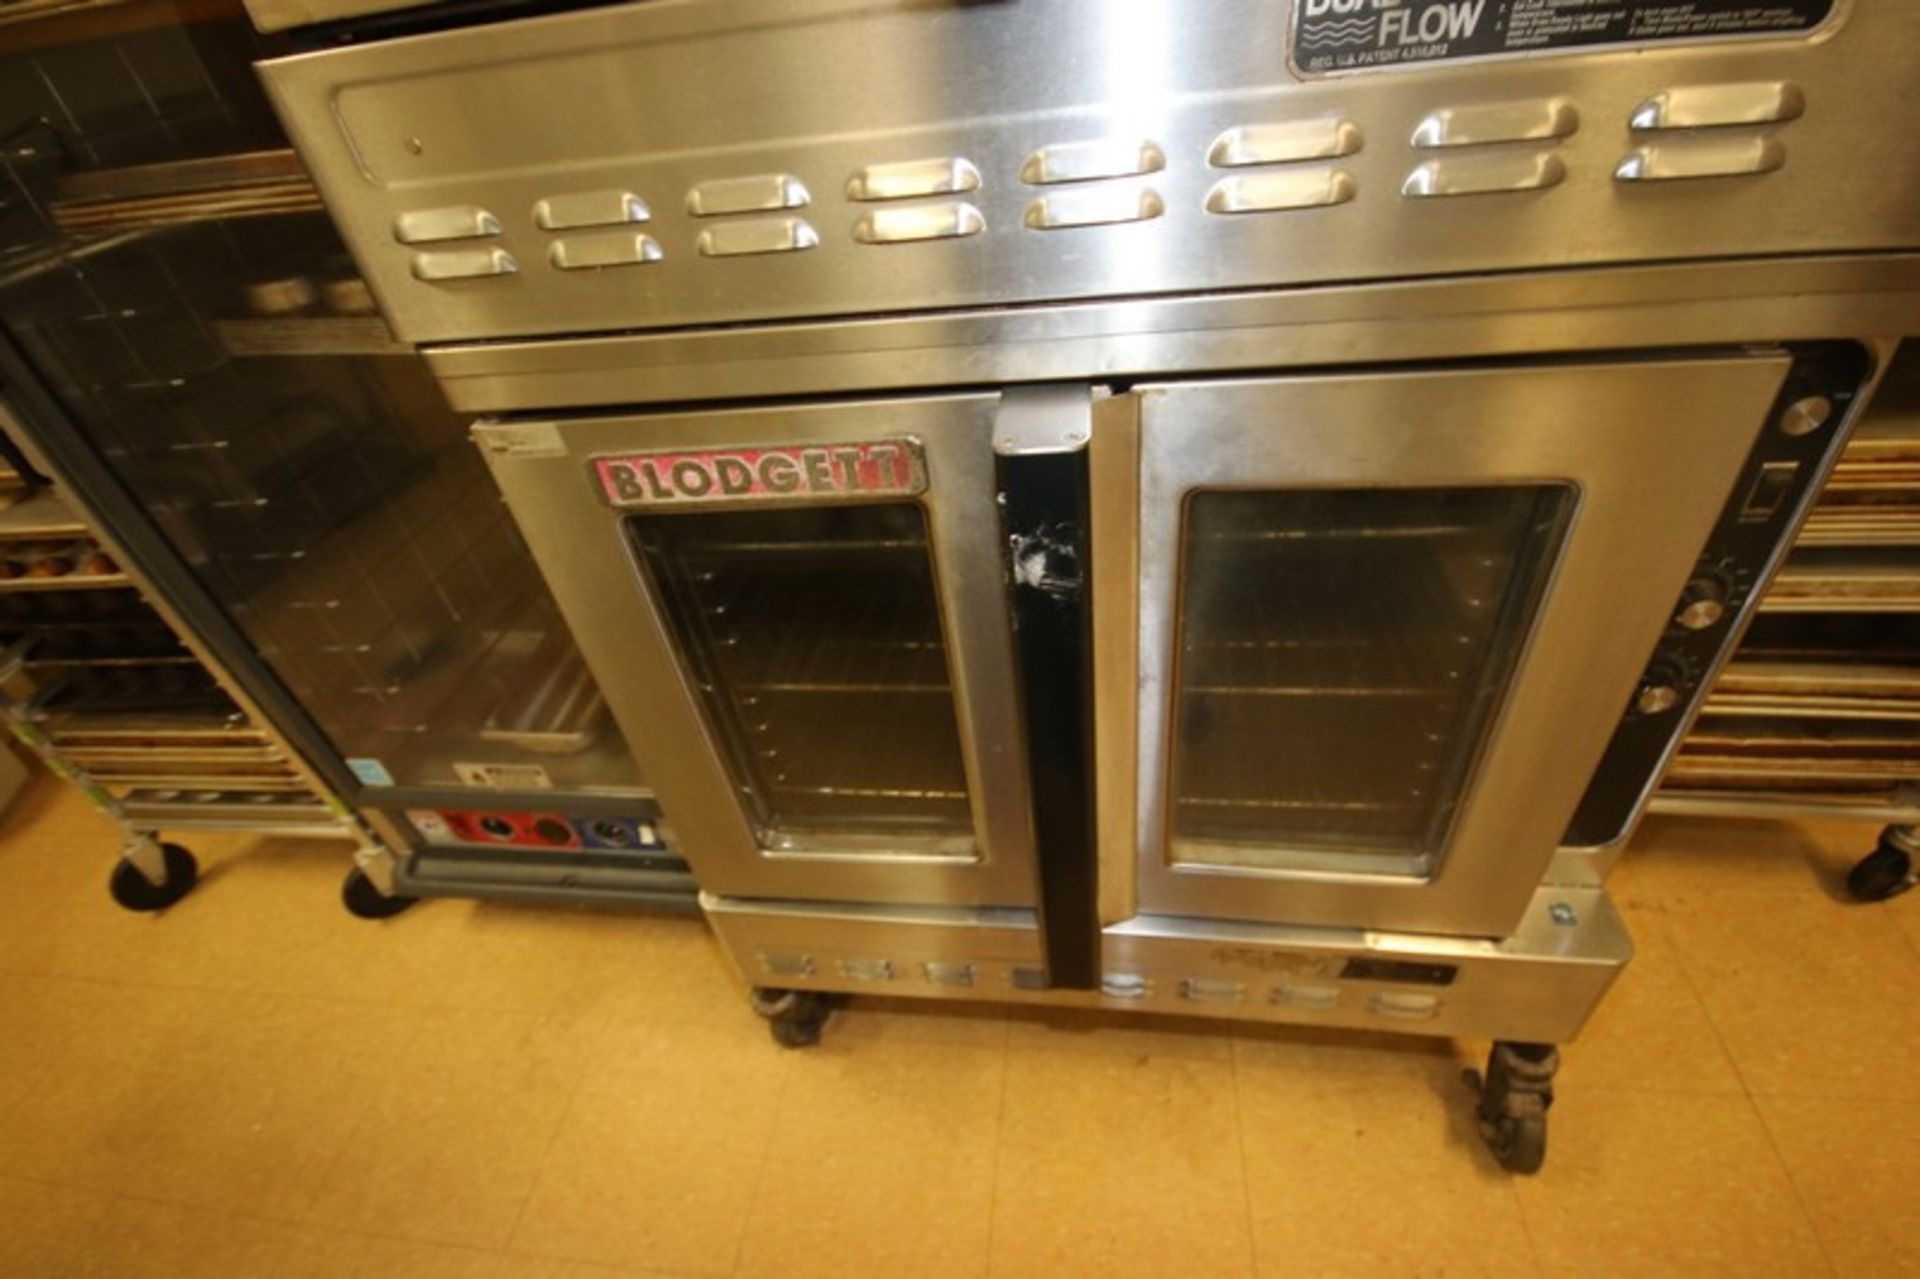 Blodgett Double Deck S/S Oven, with (3) Internal Wire Shelves In Each Compartment, Mounted on - Image 4 of 5